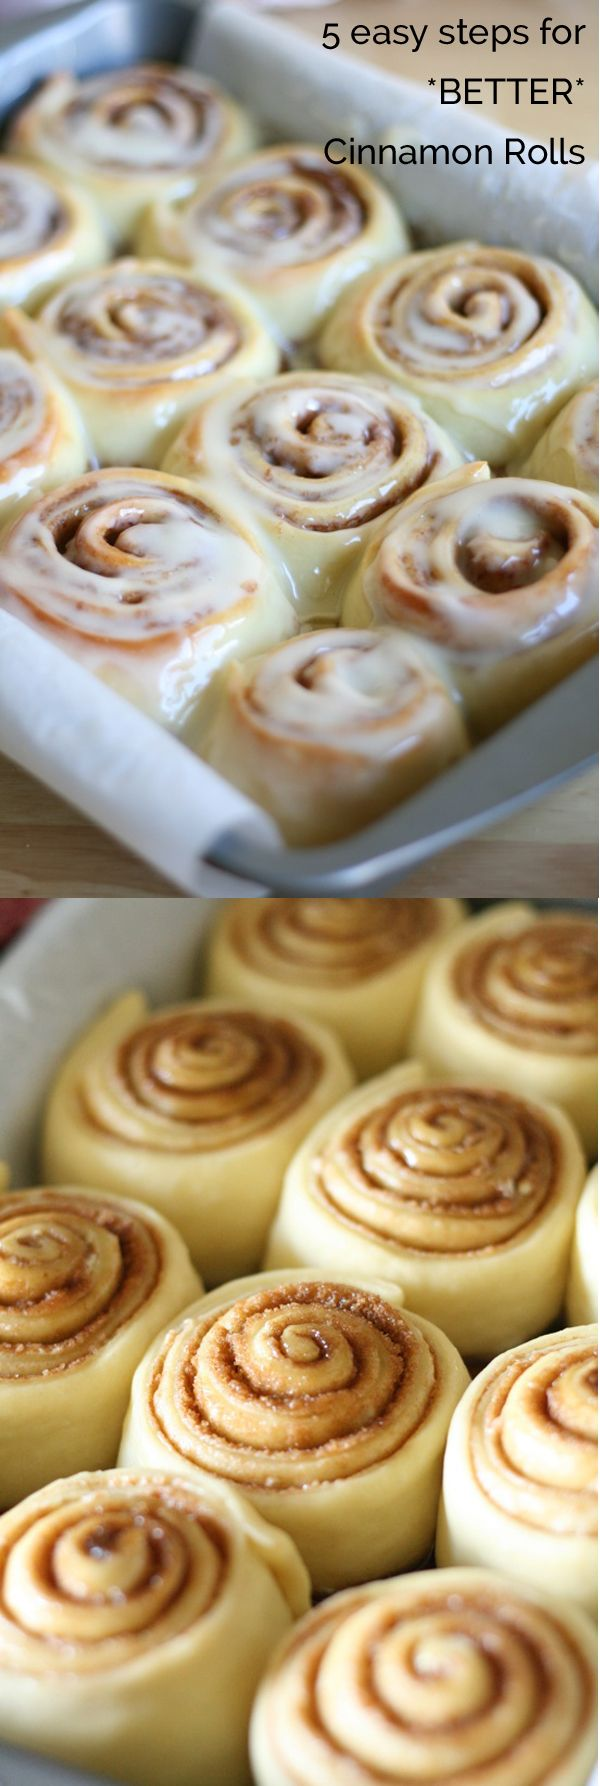 5 Easy Steps to make the BEST Cinnamon Rolls you'll ever eat! So dreamy!!!